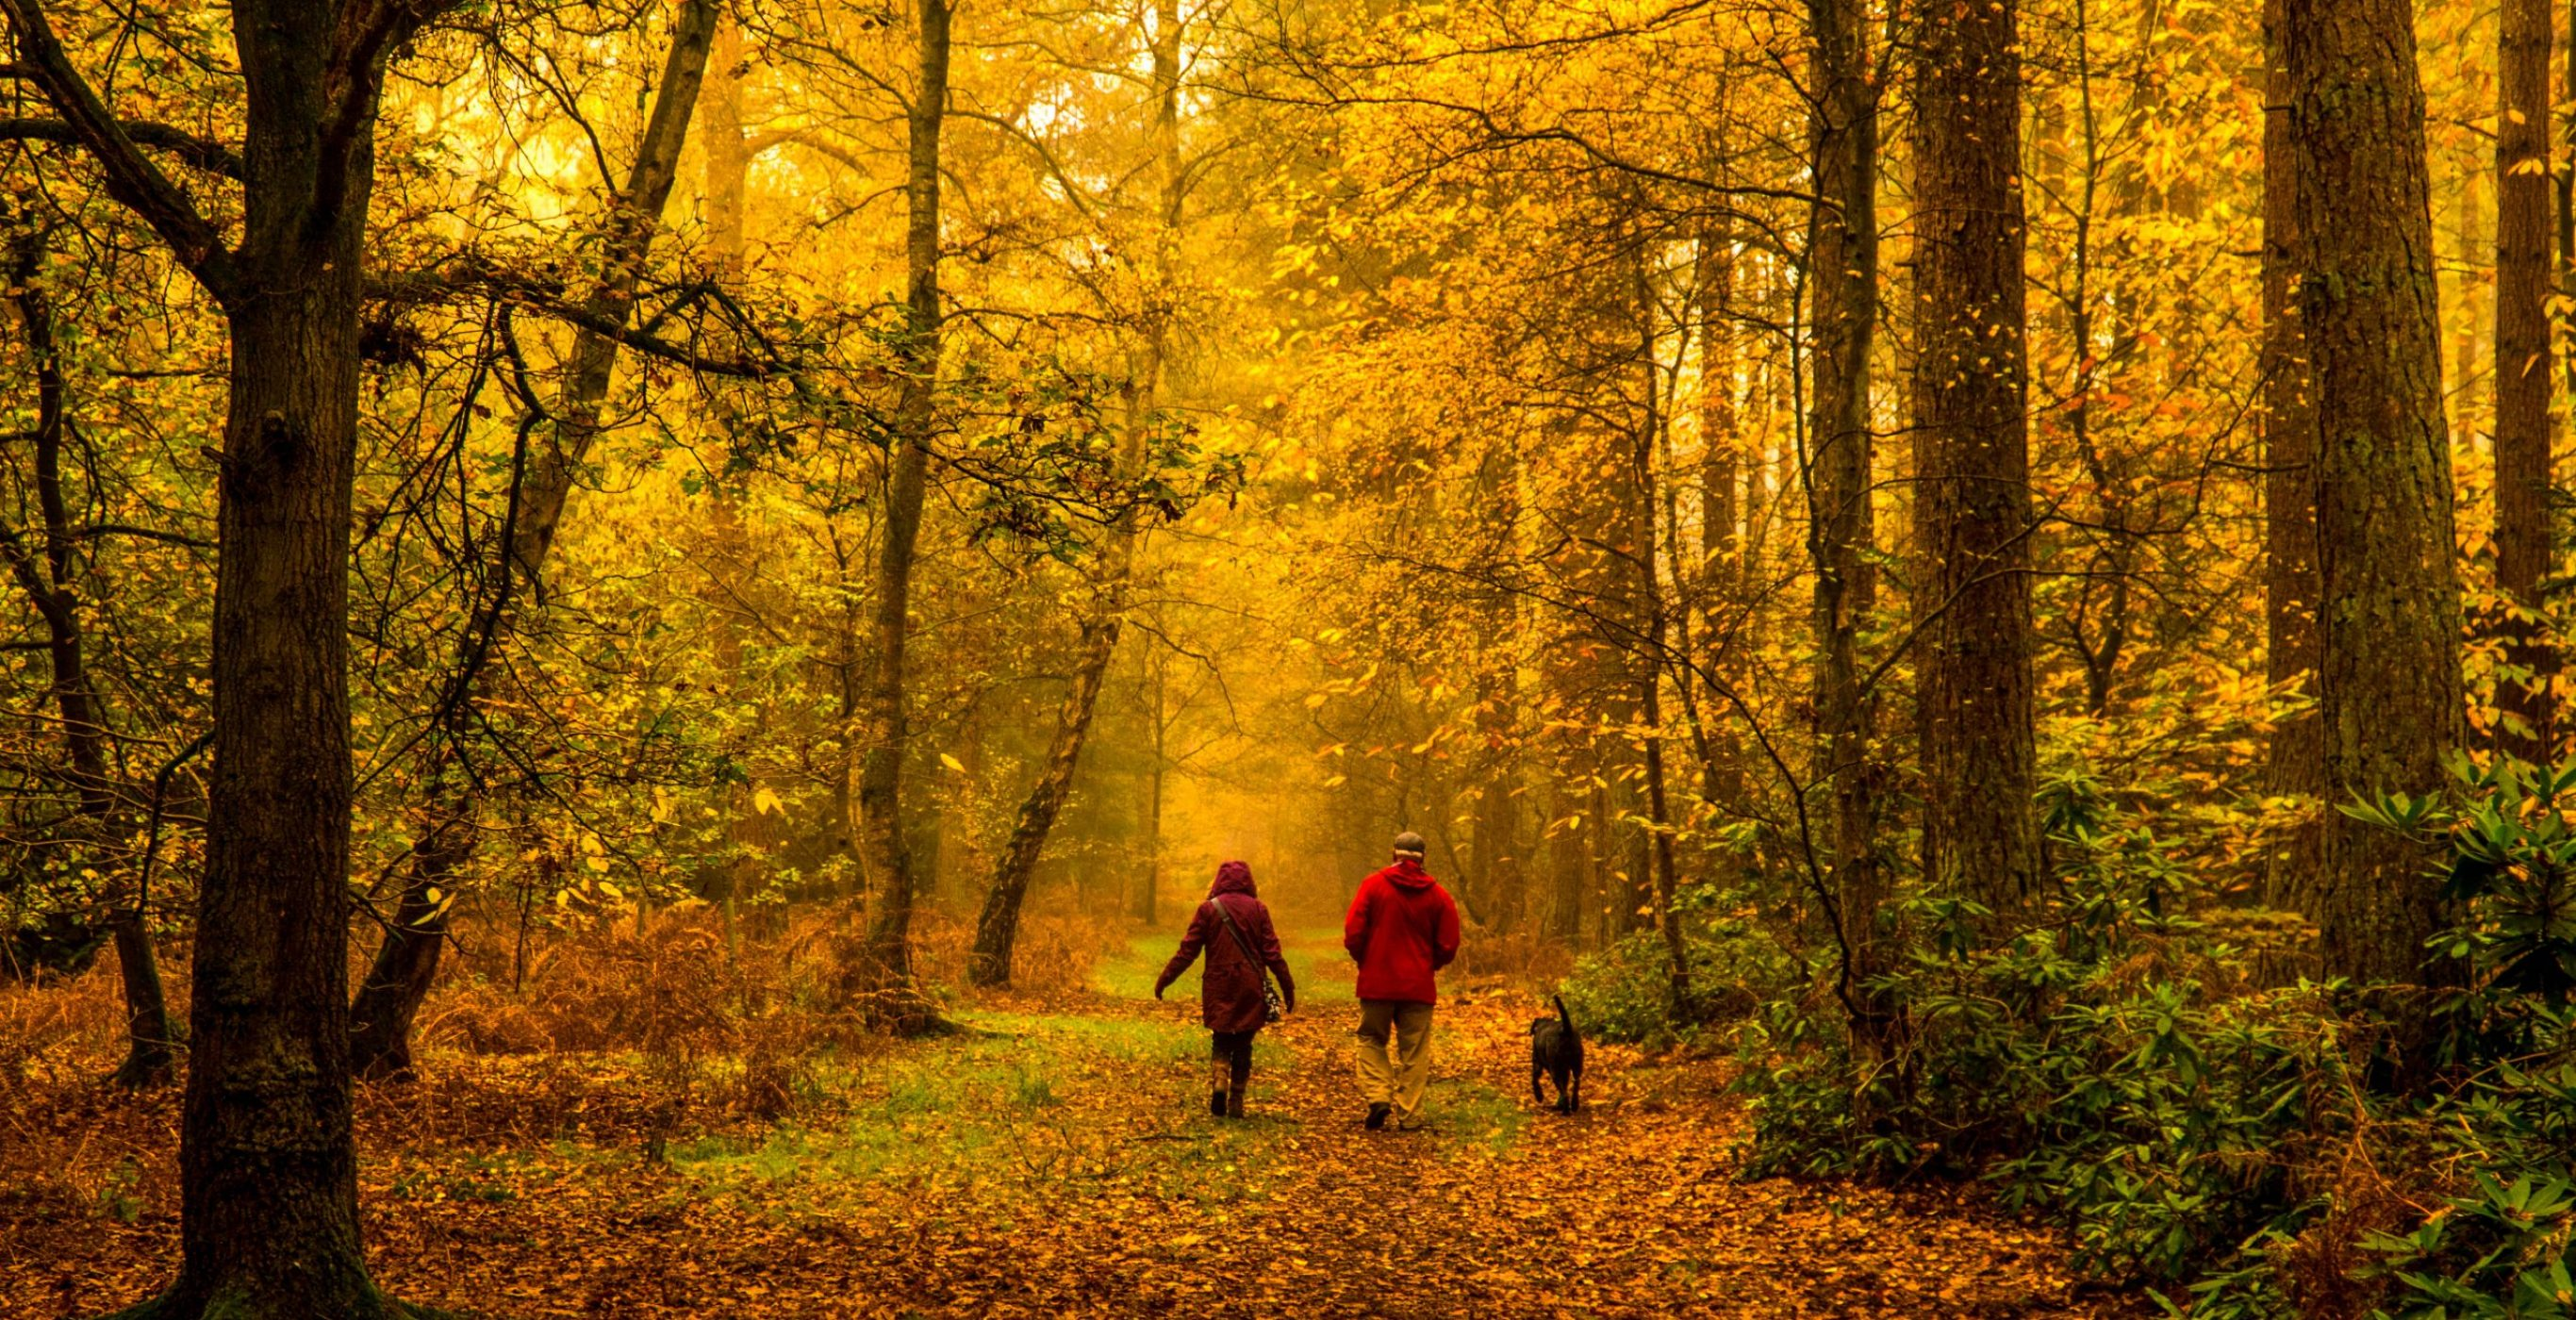 A couple and their dog walks along a leaf-covered path in the middle of the woods in autumn